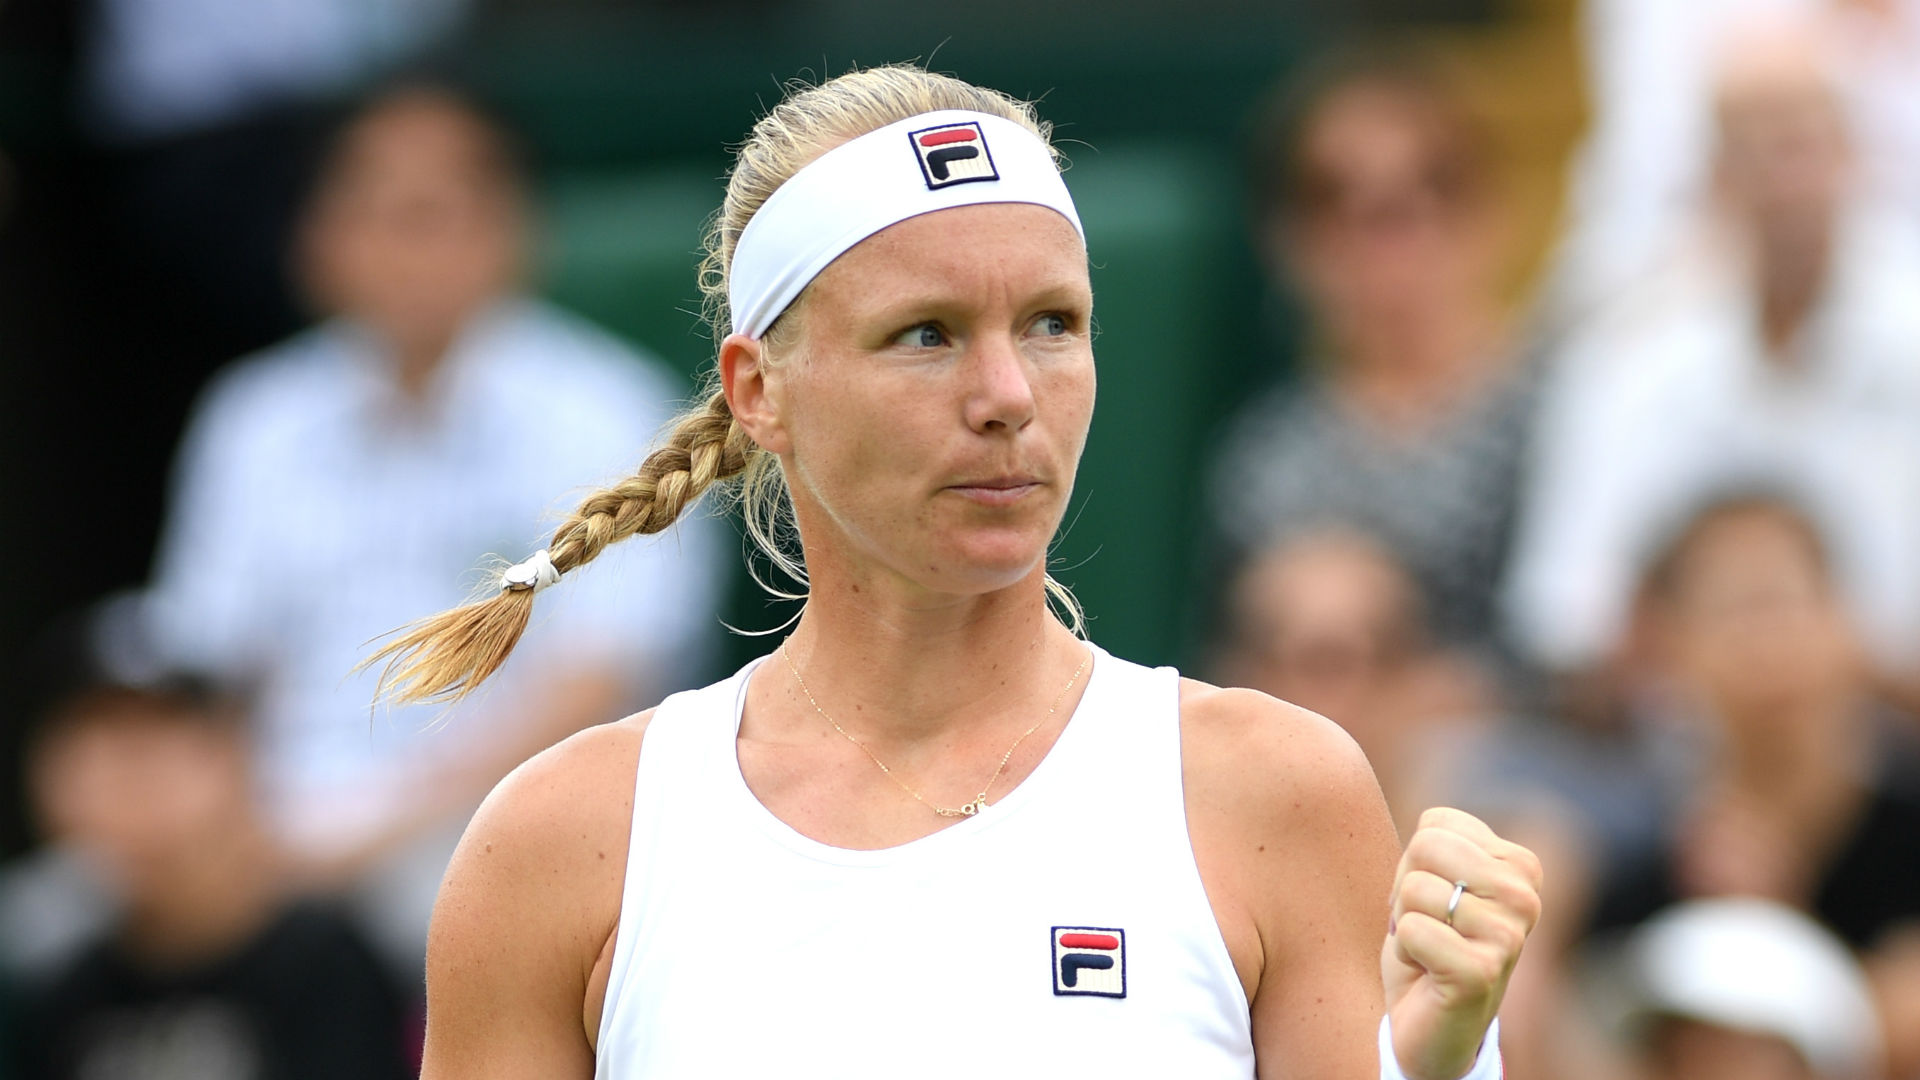 Kiki Bertens beat Aleksandra Krunic at the Palermo Open, while Anastasia Potapova battled past Diana Marcinkevica at the Baltic Open.